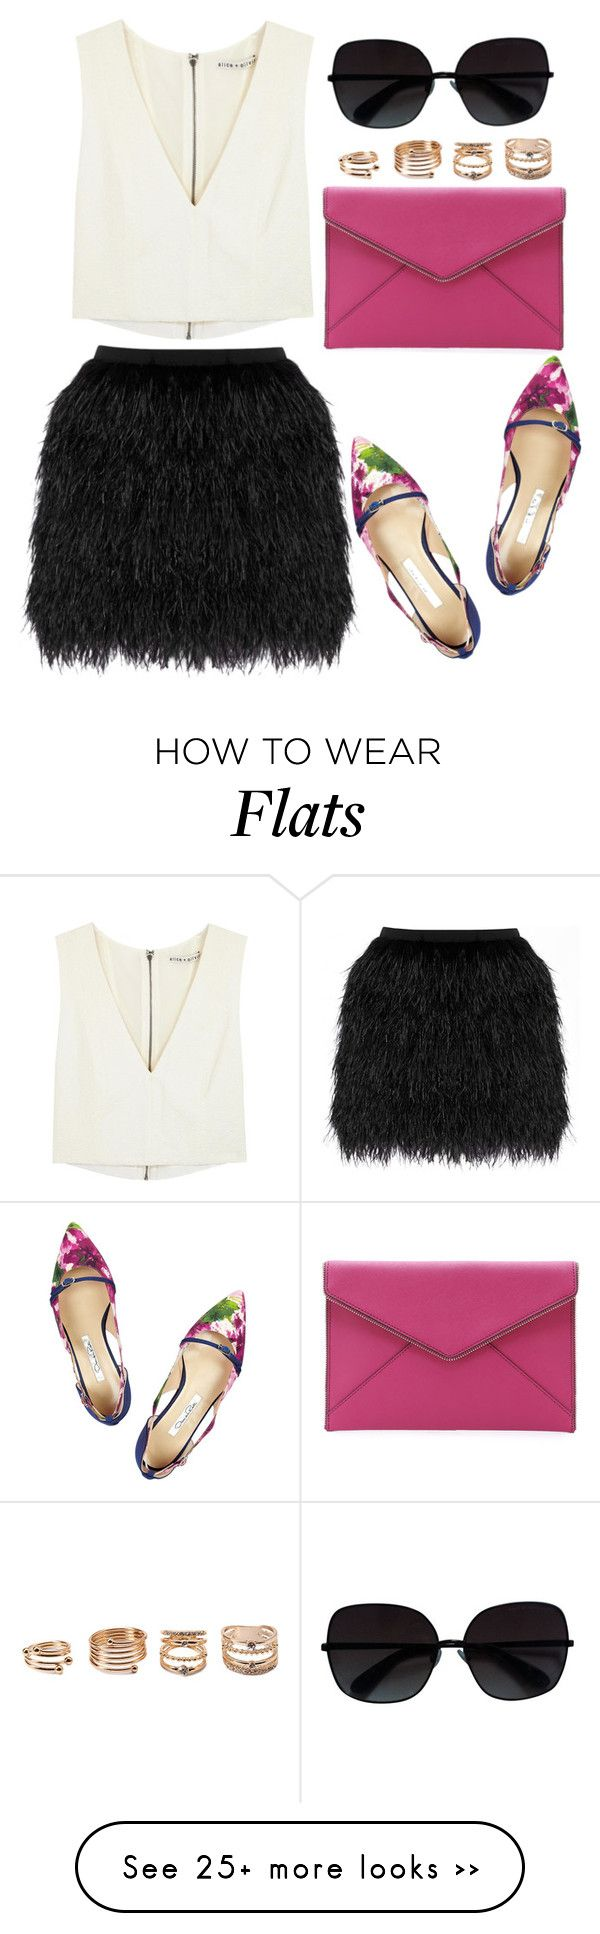 """""""#258"""" by preet111 on Polyvore featuring Raoul, Alice + Olivia, Oscar de la Renta, Rebecca Minkoff, Marc by Marc Jacobs, Forever 21, croptop, Leather and MINISKIRT"""